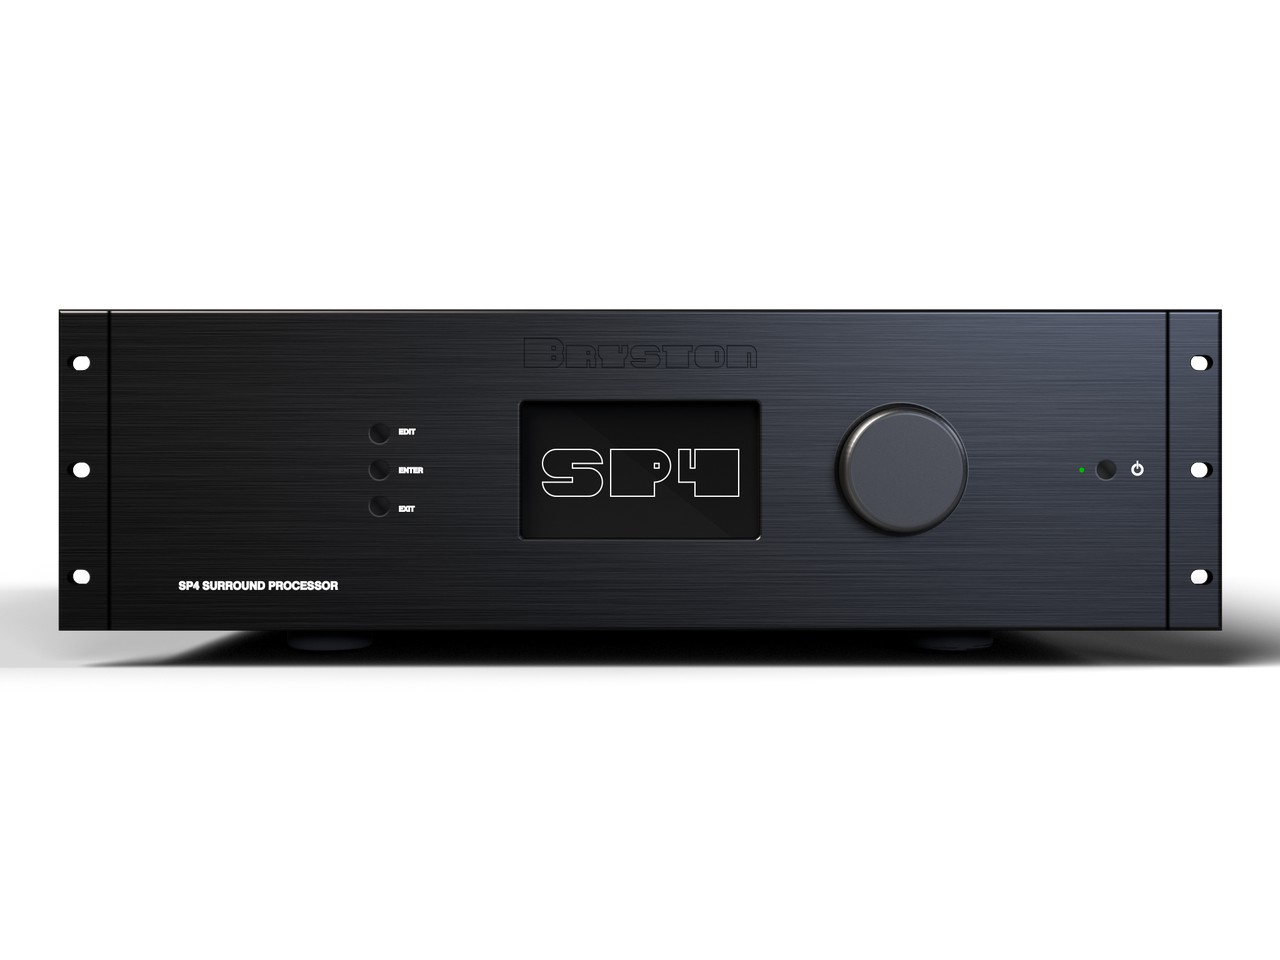 Surround Yourself with Quality Audio: Bryston SP4 - The Sound